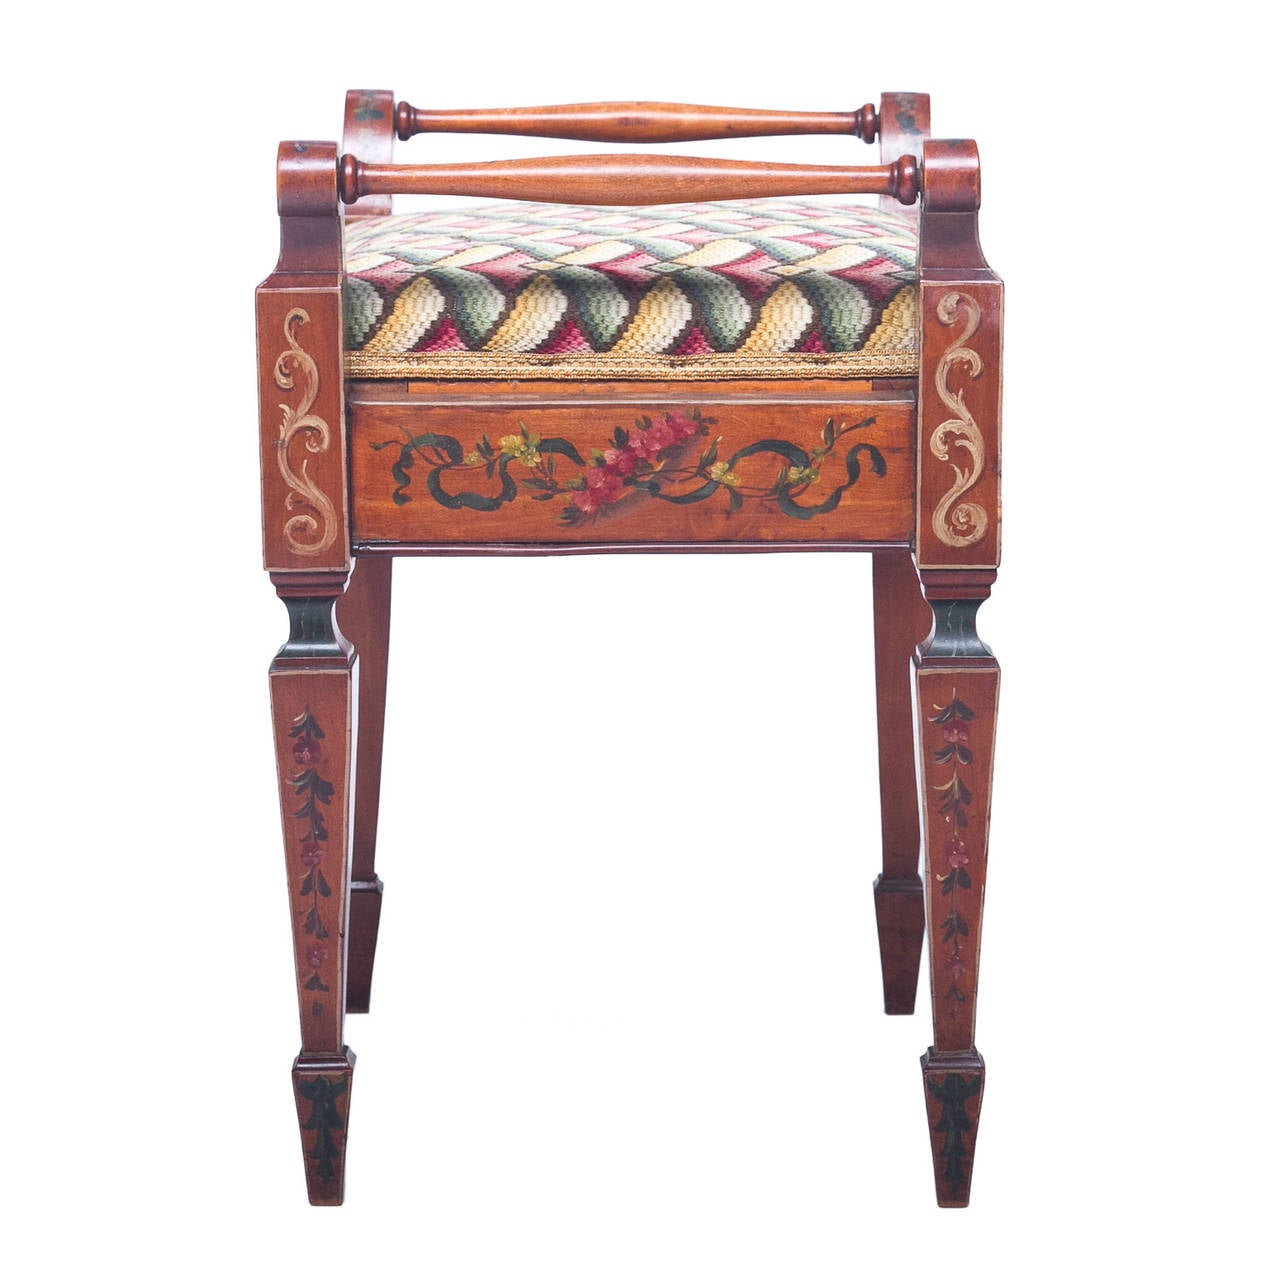 Needlepoint Navy English Painted Satinwood Bench With Lift Seat For Sale At